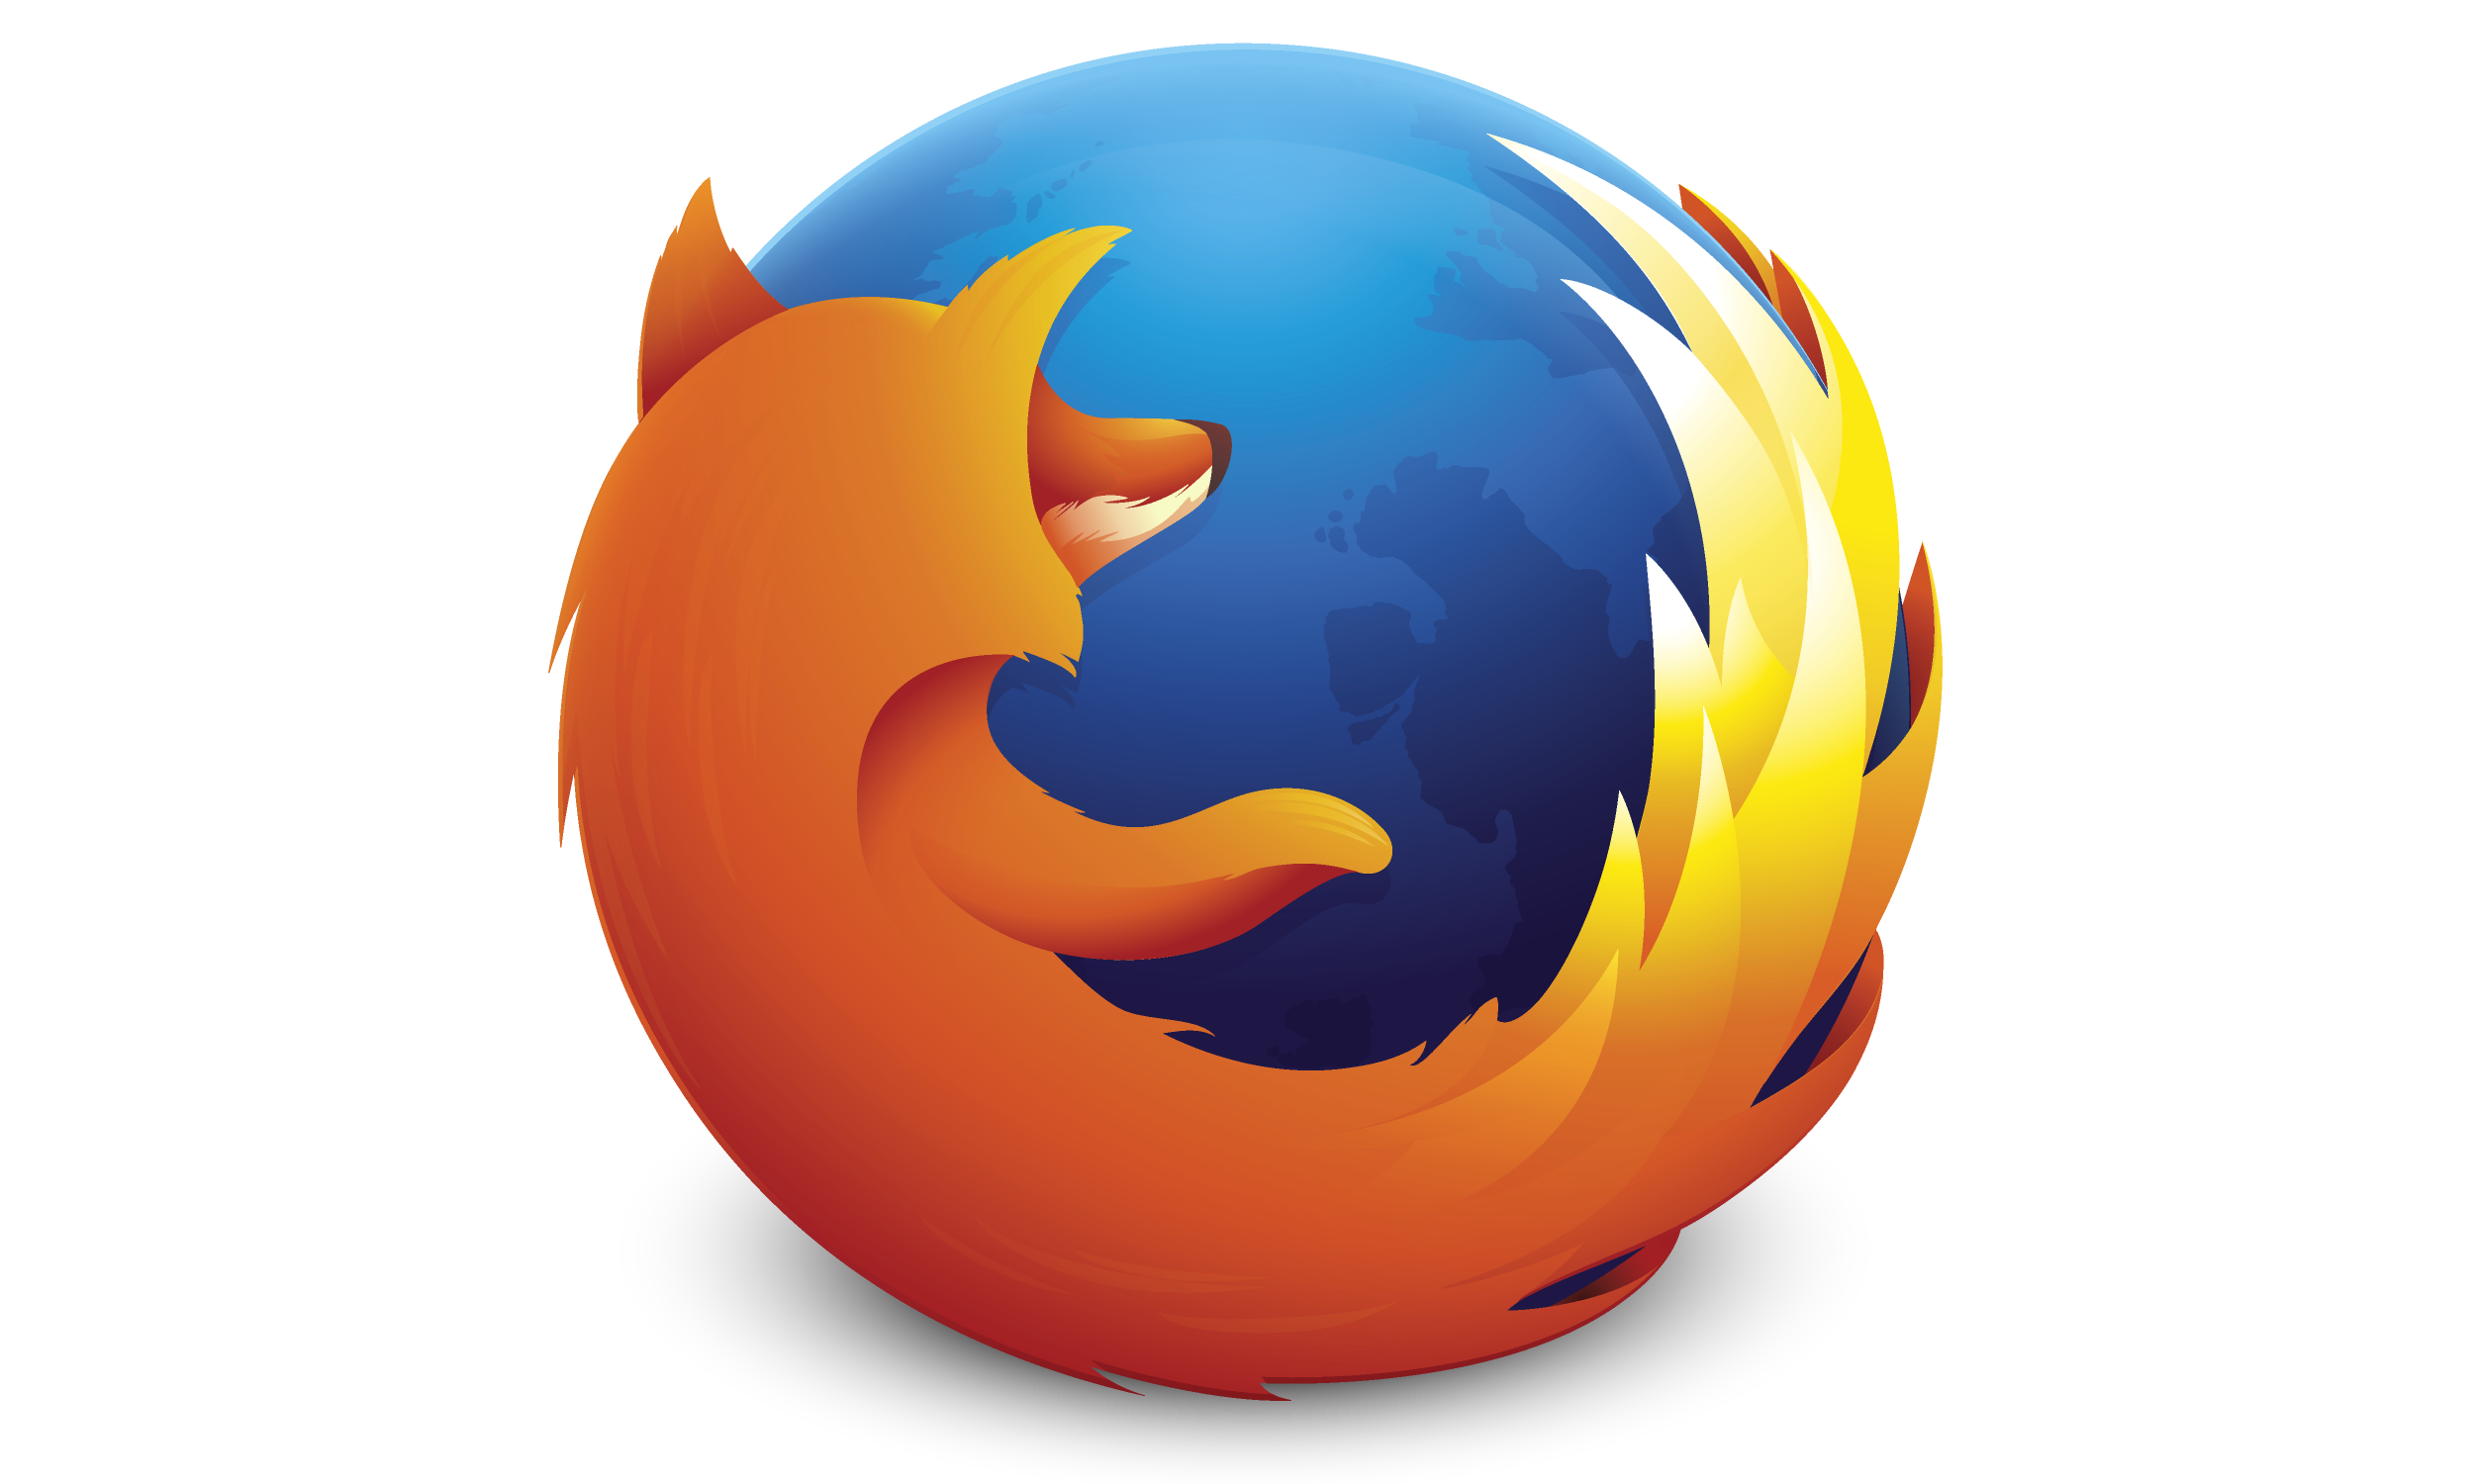 Mozilla New Firefox 8.0 for iOS Announced with Varied New Features